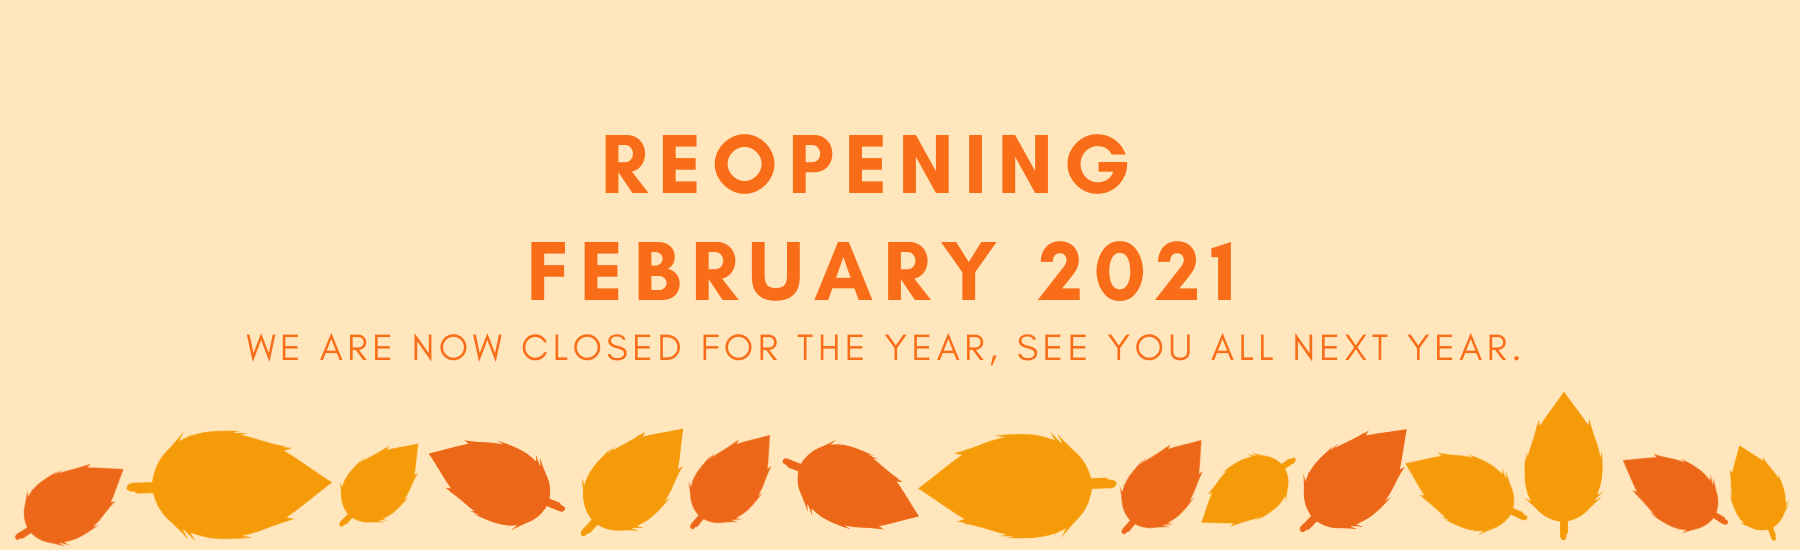 Reopening february 2021 New rules have been put in place for your safety.